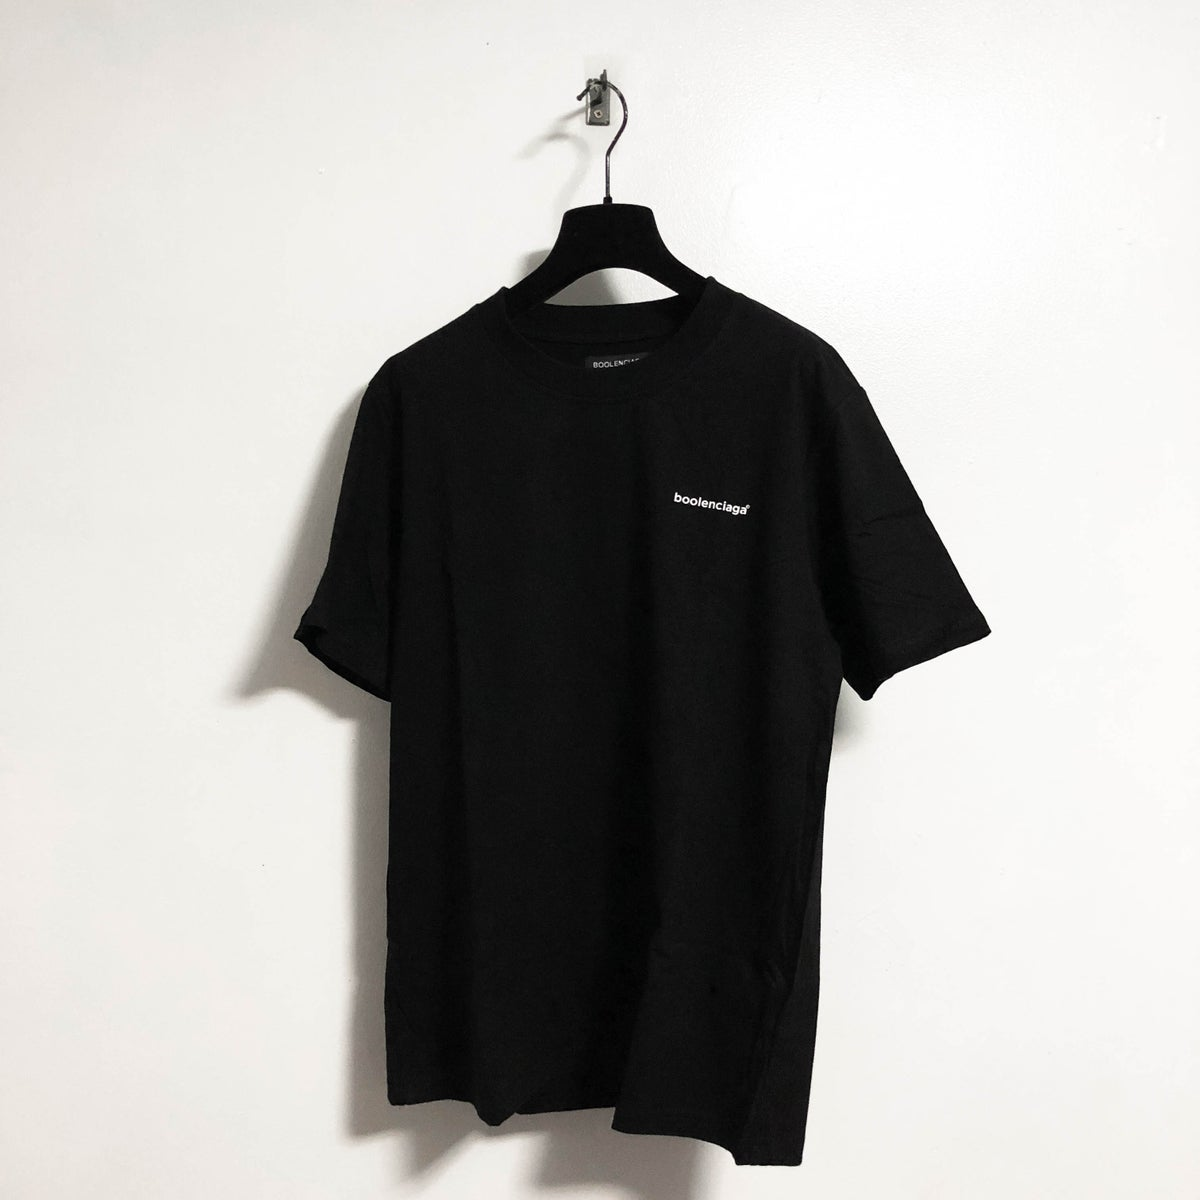 Image of Black Boolenciaga Tee